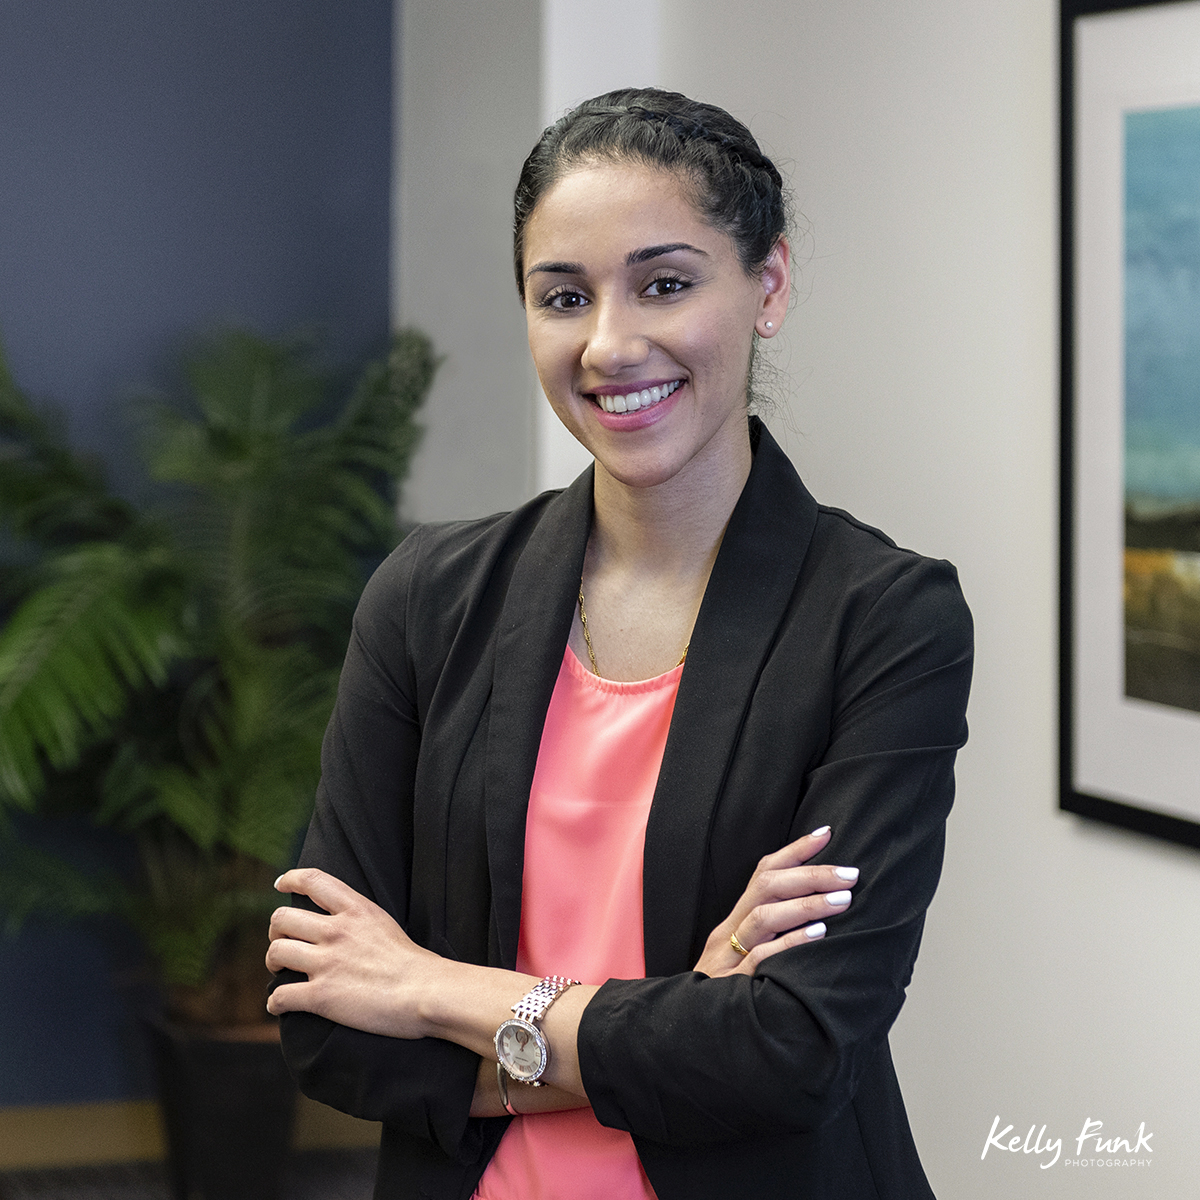 Portrait of a young woman working for RBC in Kamloops, British Columbia, Canada